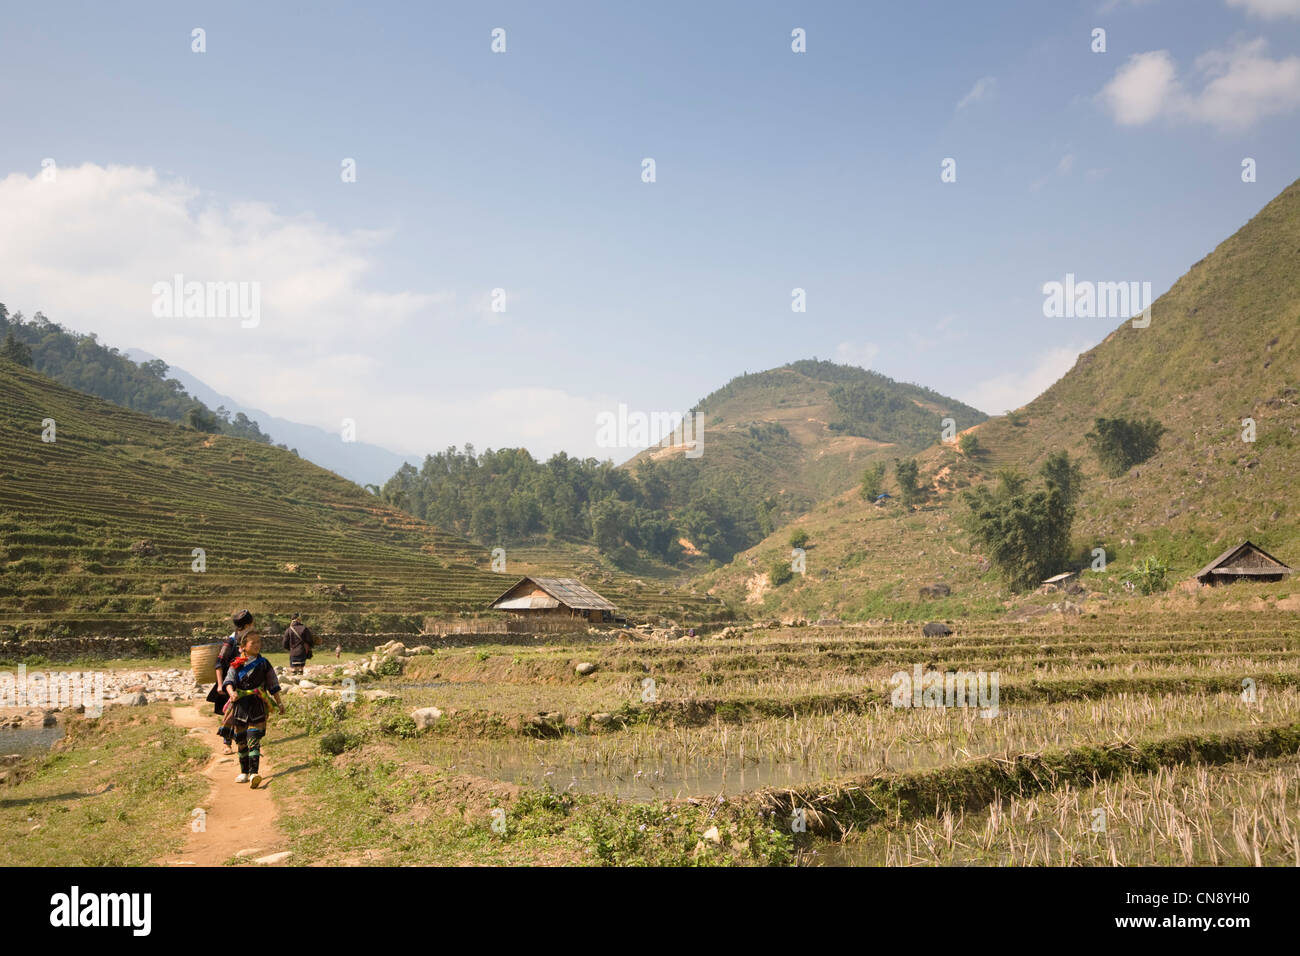 Black Hmong hill tribe girls walking on trail in Lao Chai village near Sapa town, Vietnam Stock Photo